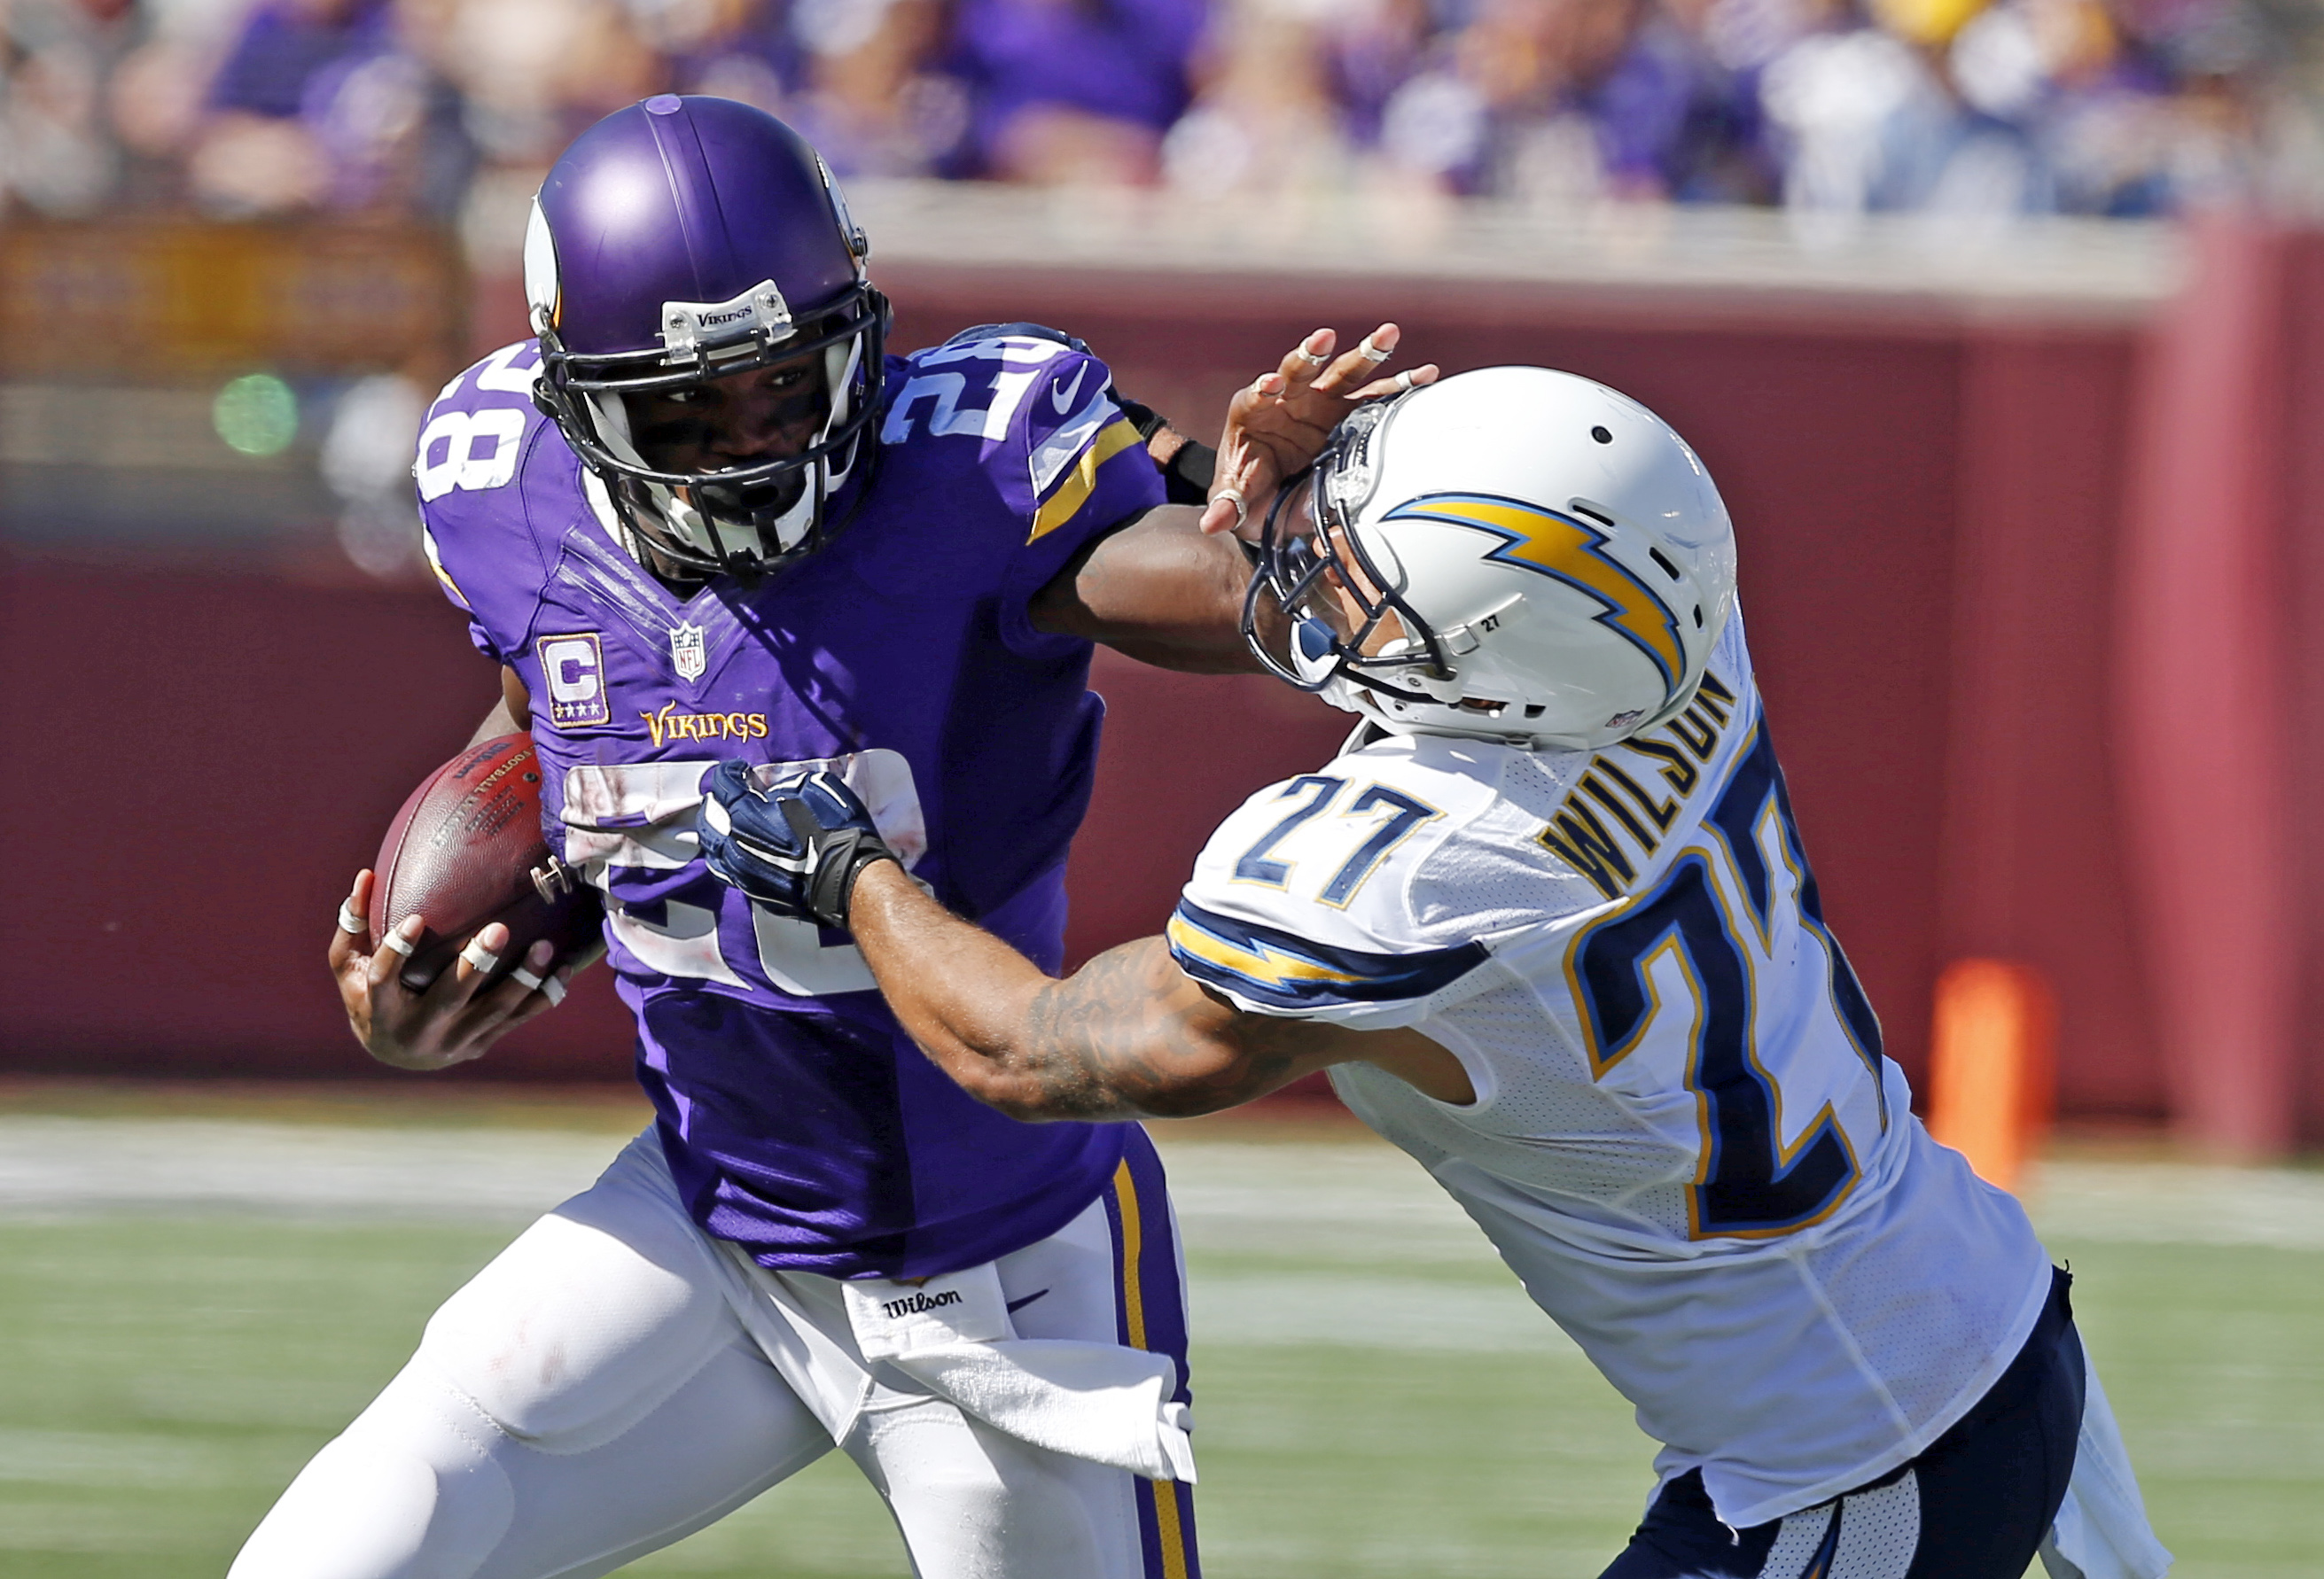 Minnesota Vikings running back Adrian Peterson (28) pushes off the tackle of San Diego Chargers strong safety Jimmy Wilson (27) on his way to a touchdown in the second half of an NFL football game in Minneapolis, Sunday, Sept. 27, 2015. (AP Photo/Jim Mone